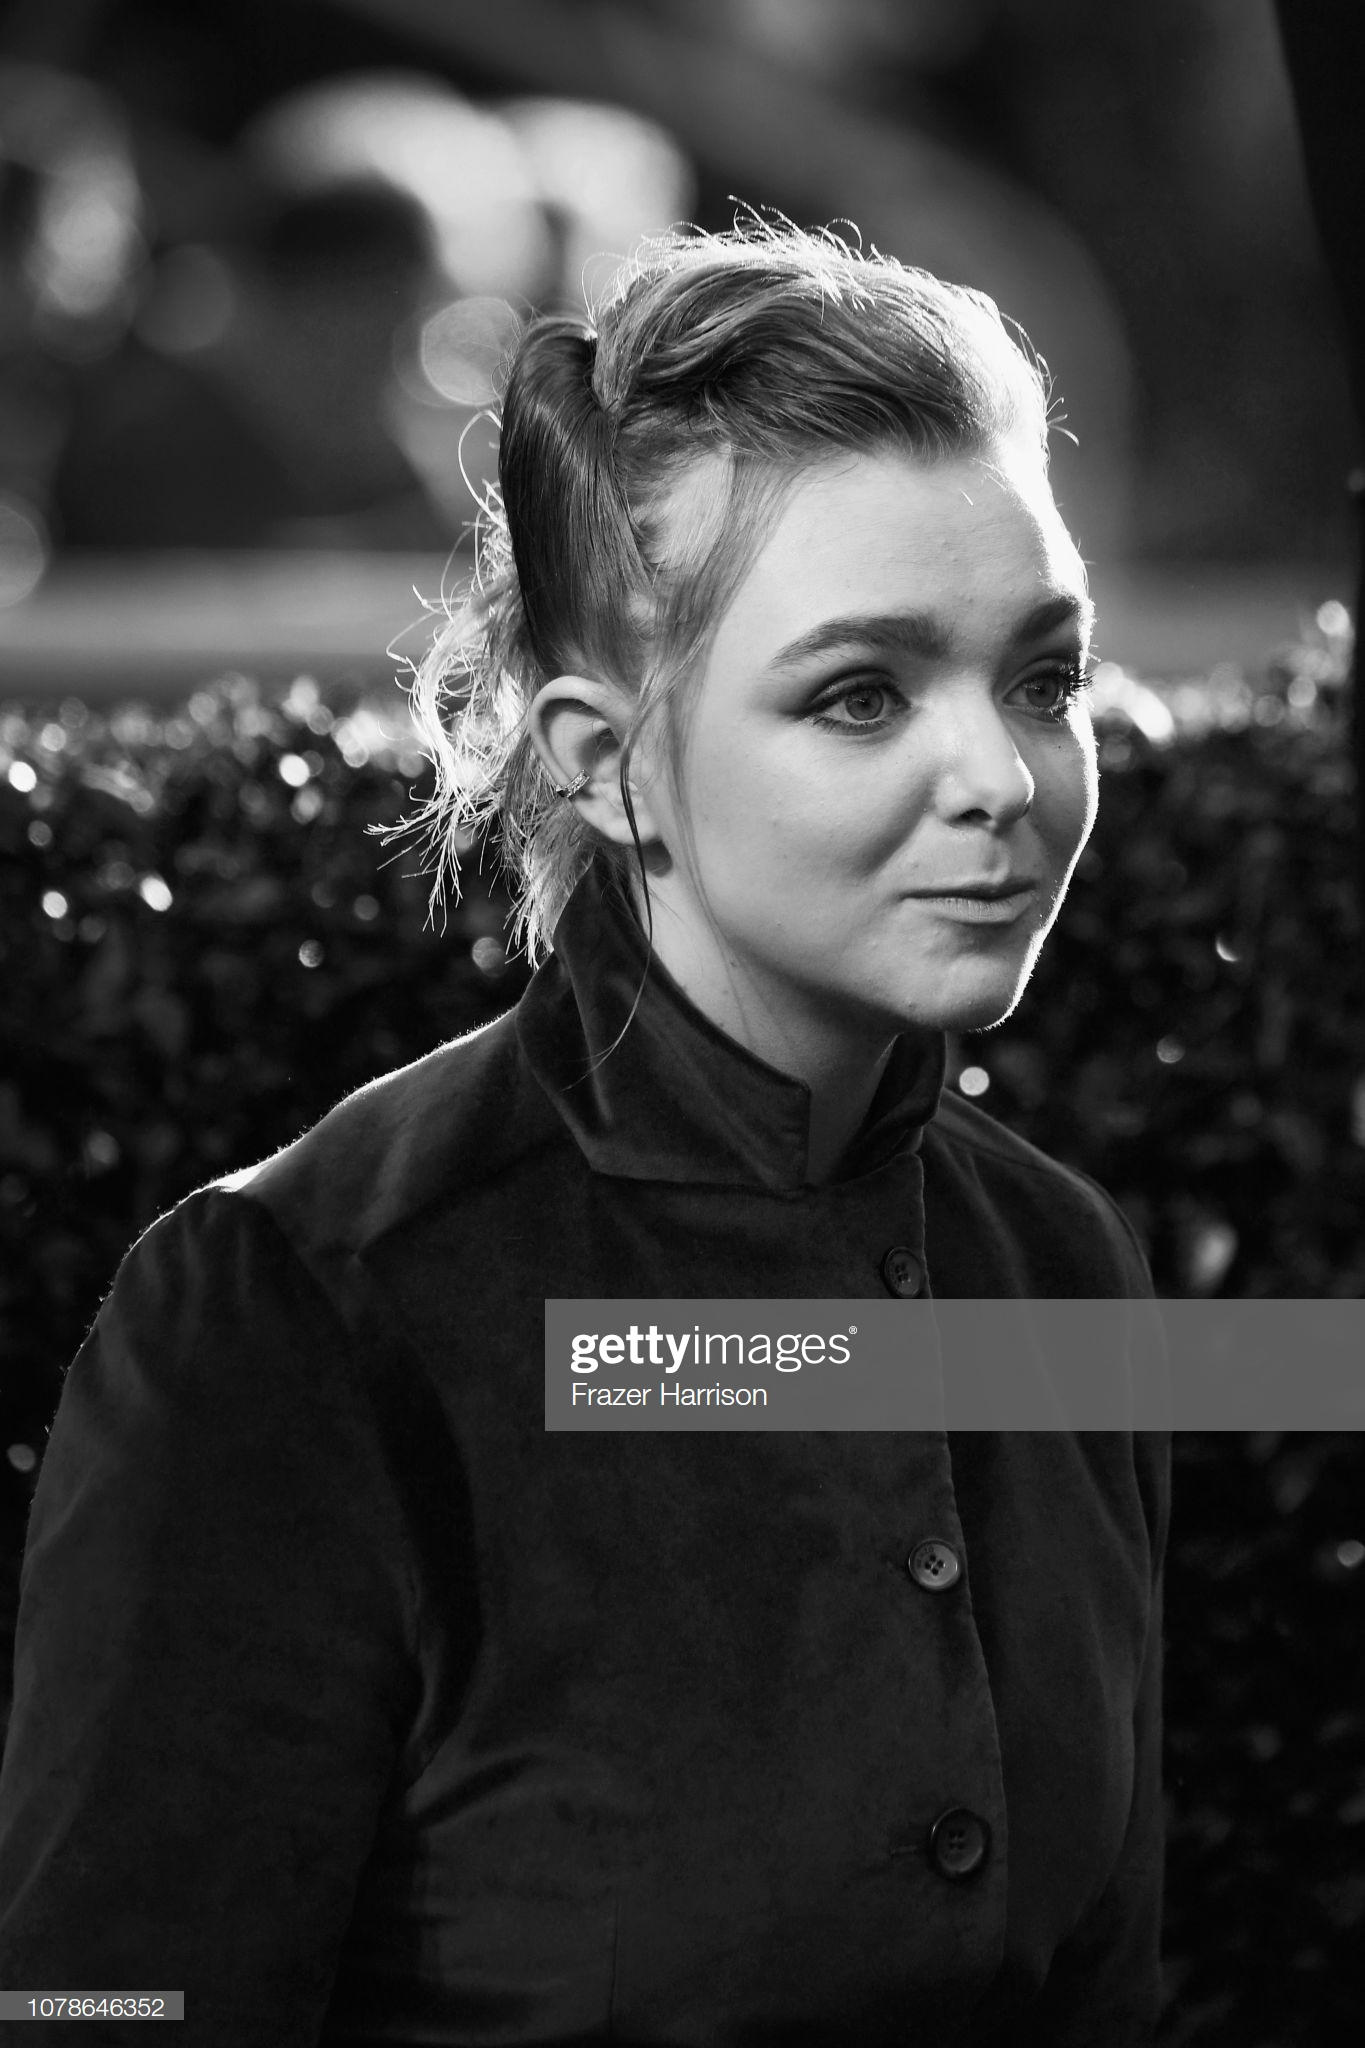 gettyimages-1078646352-2048x2048.jpg